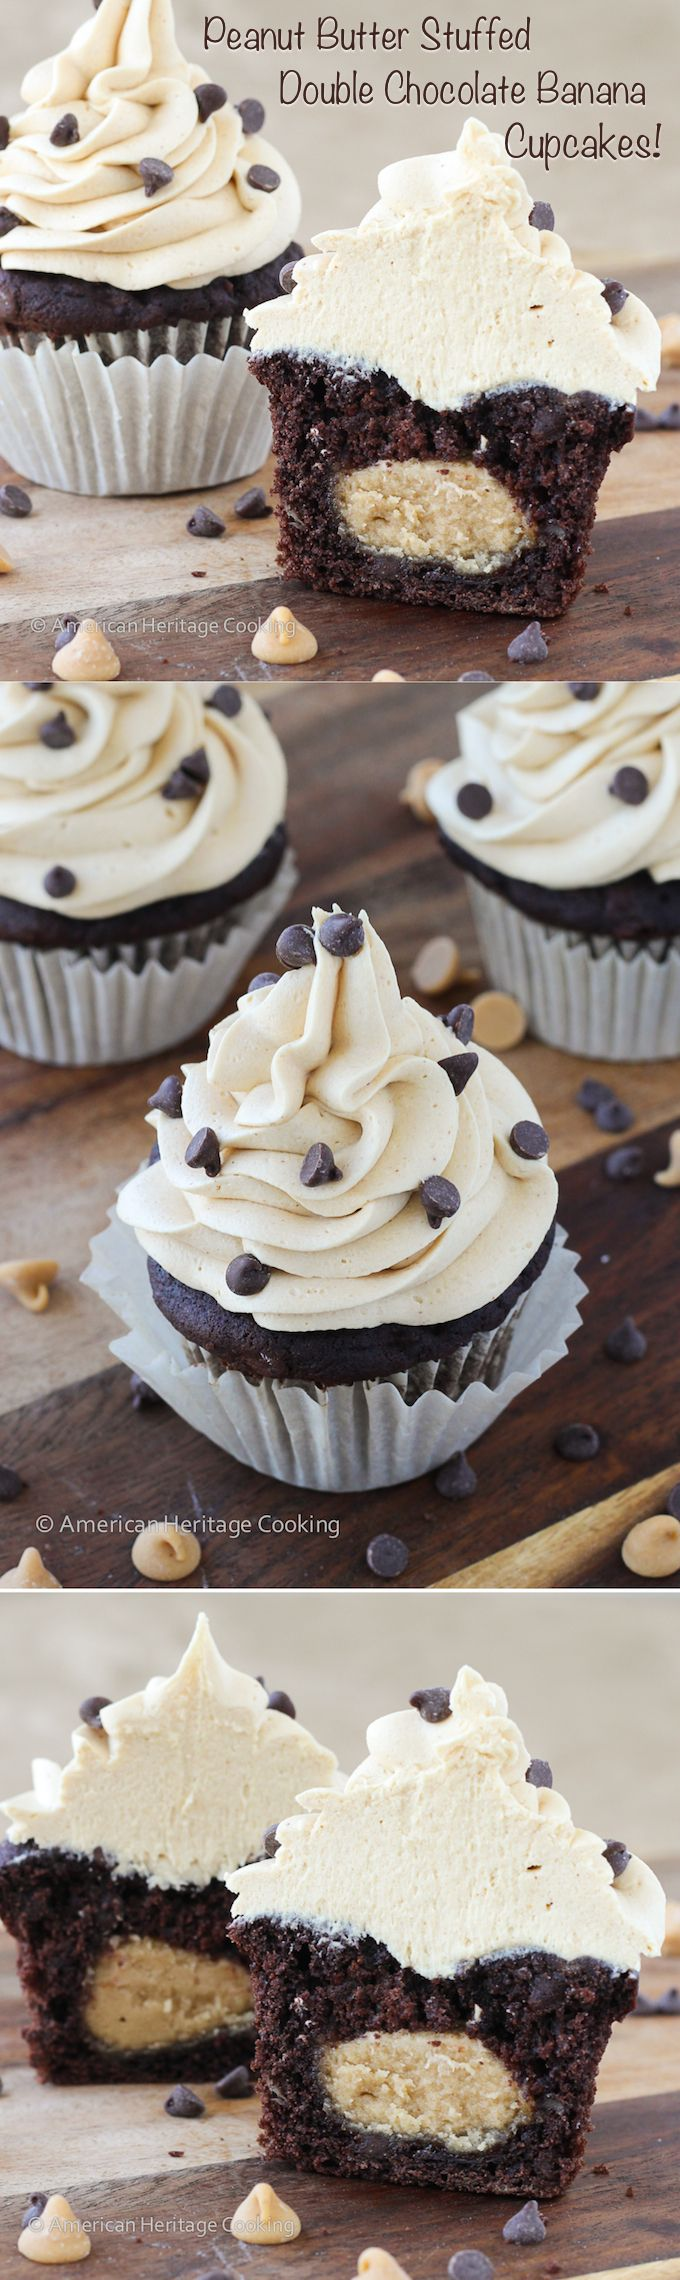 Peanut Butter Stuffed Double Chocolate Banana Cupcakes Peanut Butter Frosting